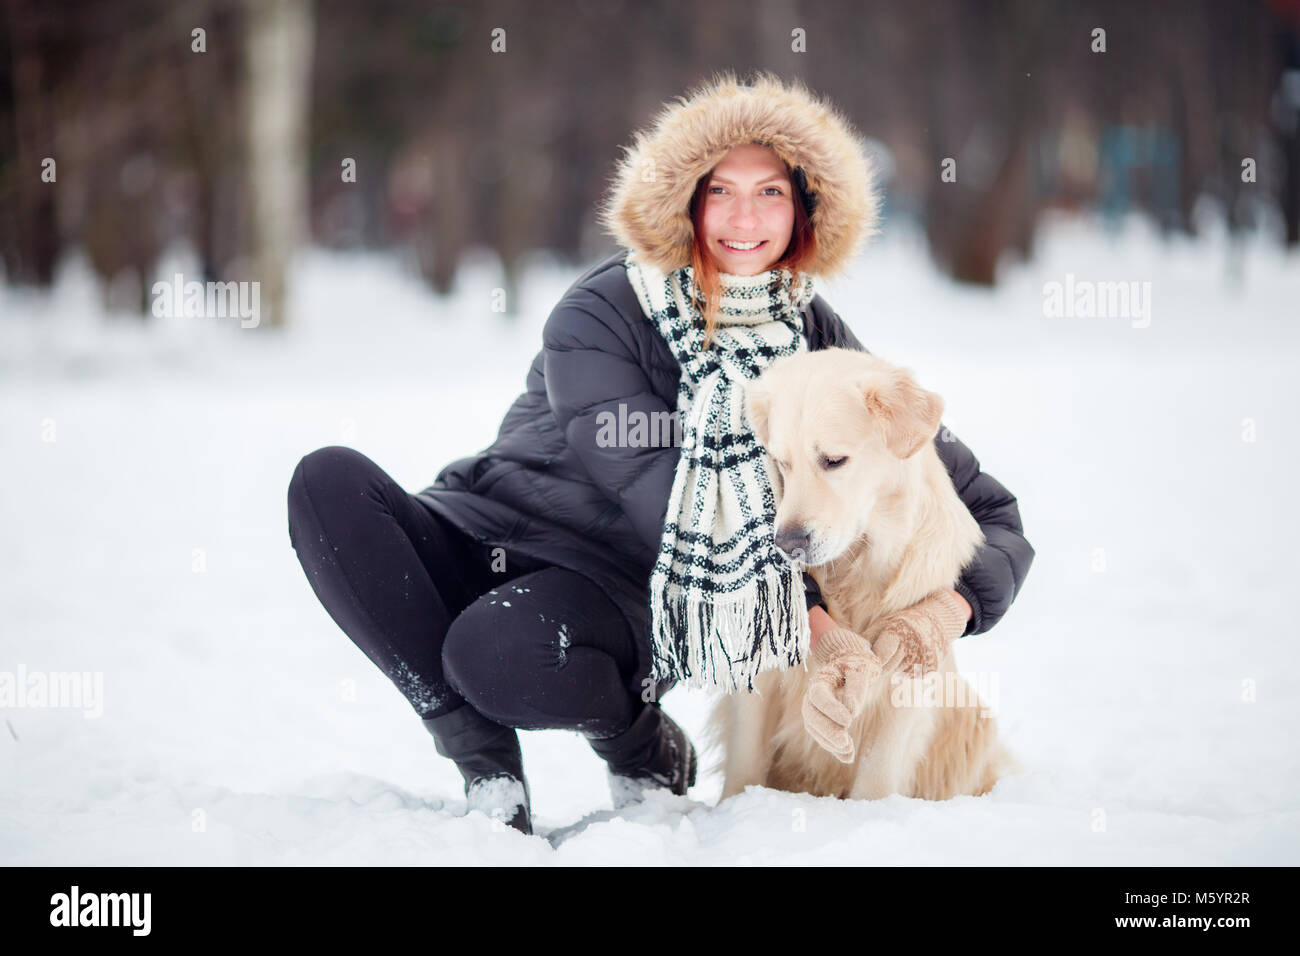 Image of girl in black jacket squatting next to dog in winter - Stock Image